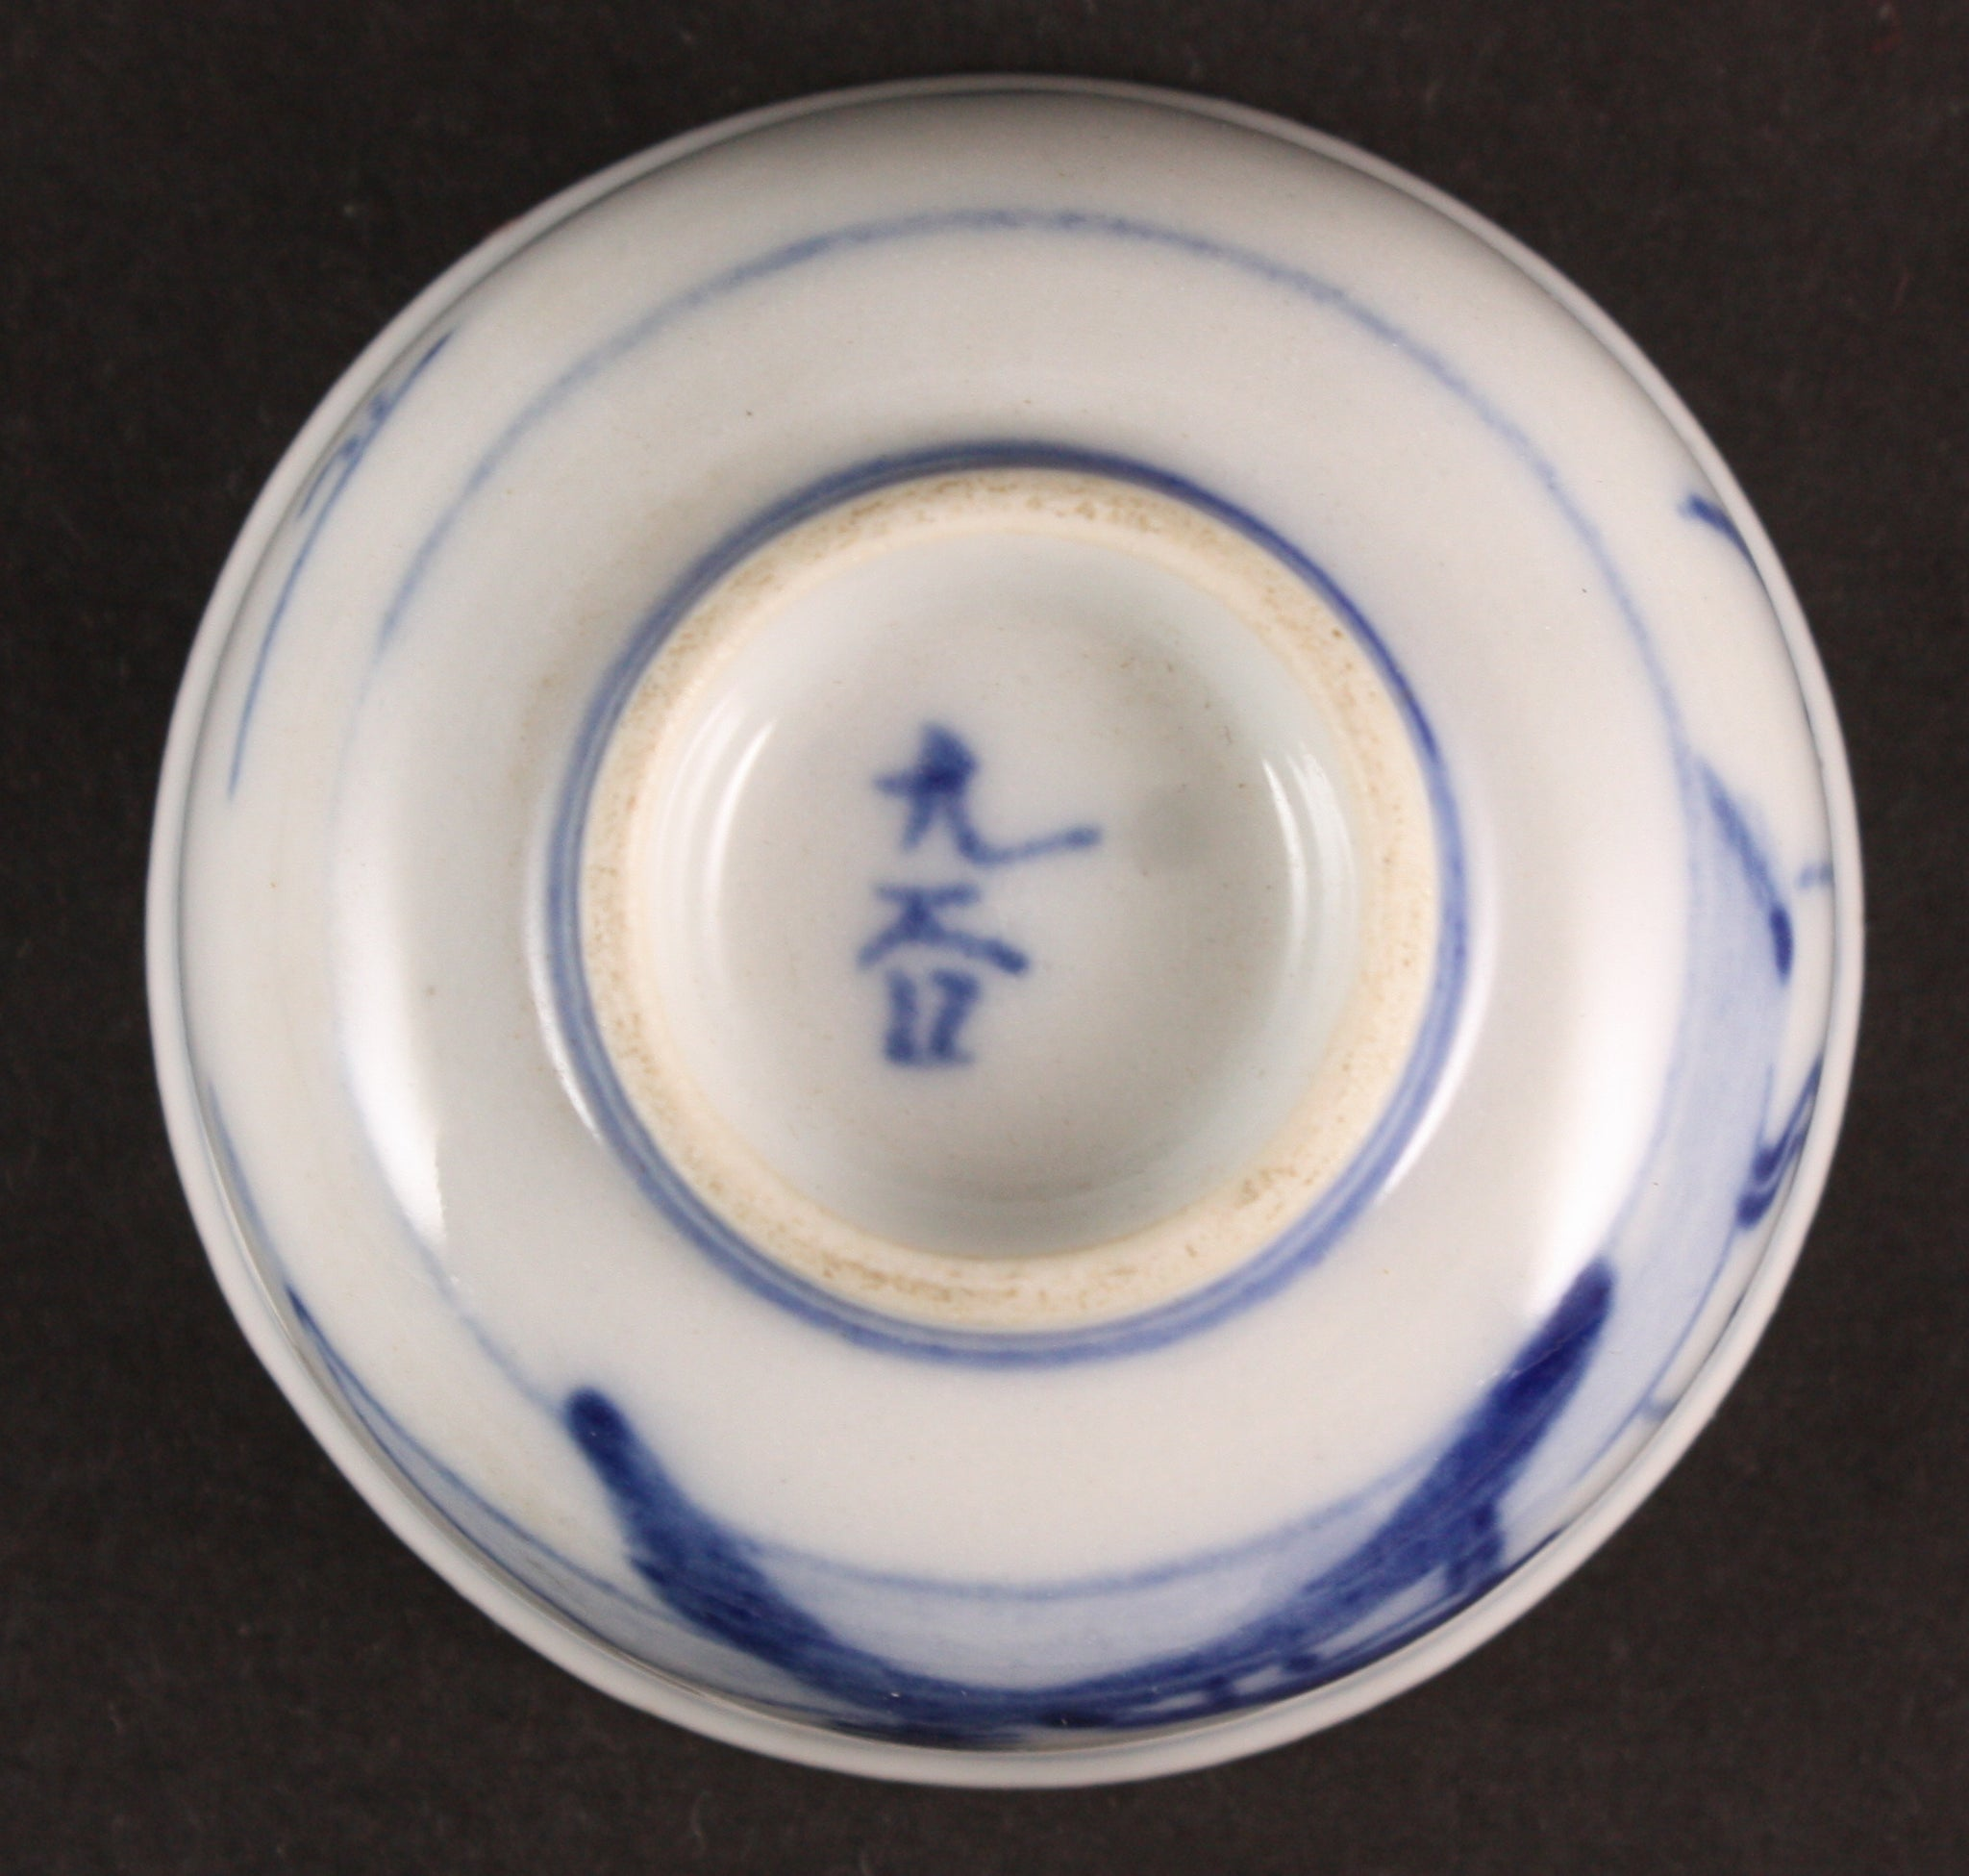 Rare Antique Japanese Military 1932 Shanghai Incident Three Nikudan Soldiers Army Sake Cup